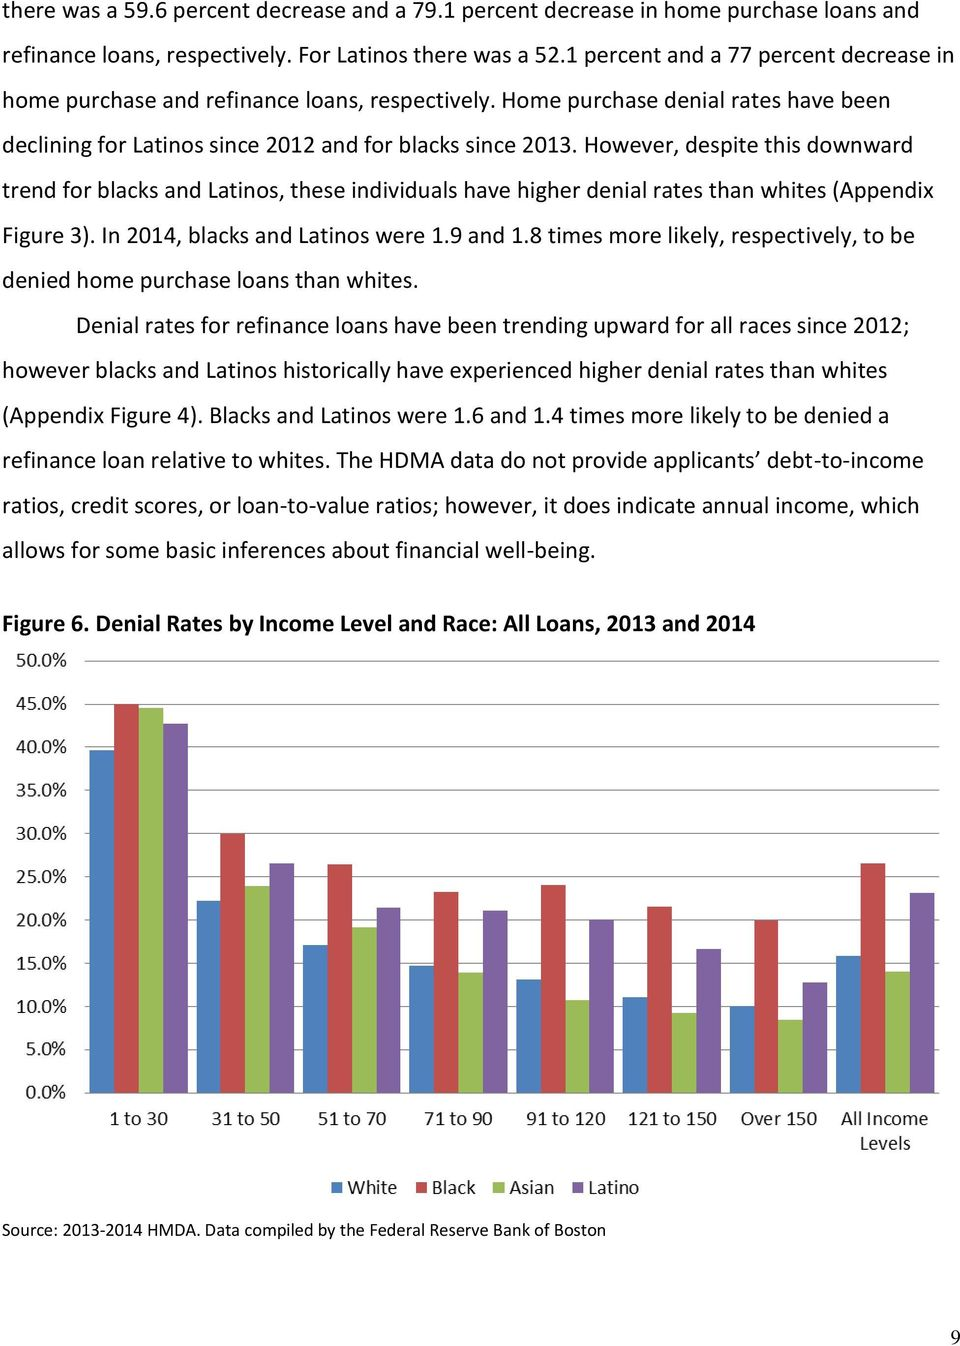 However, despite this downward trend for blacks and Latinos, these individuals have higher denial rates than whites (Appendix Figure 3). In 2014, blacks and Latinos were 1.9 and 1.